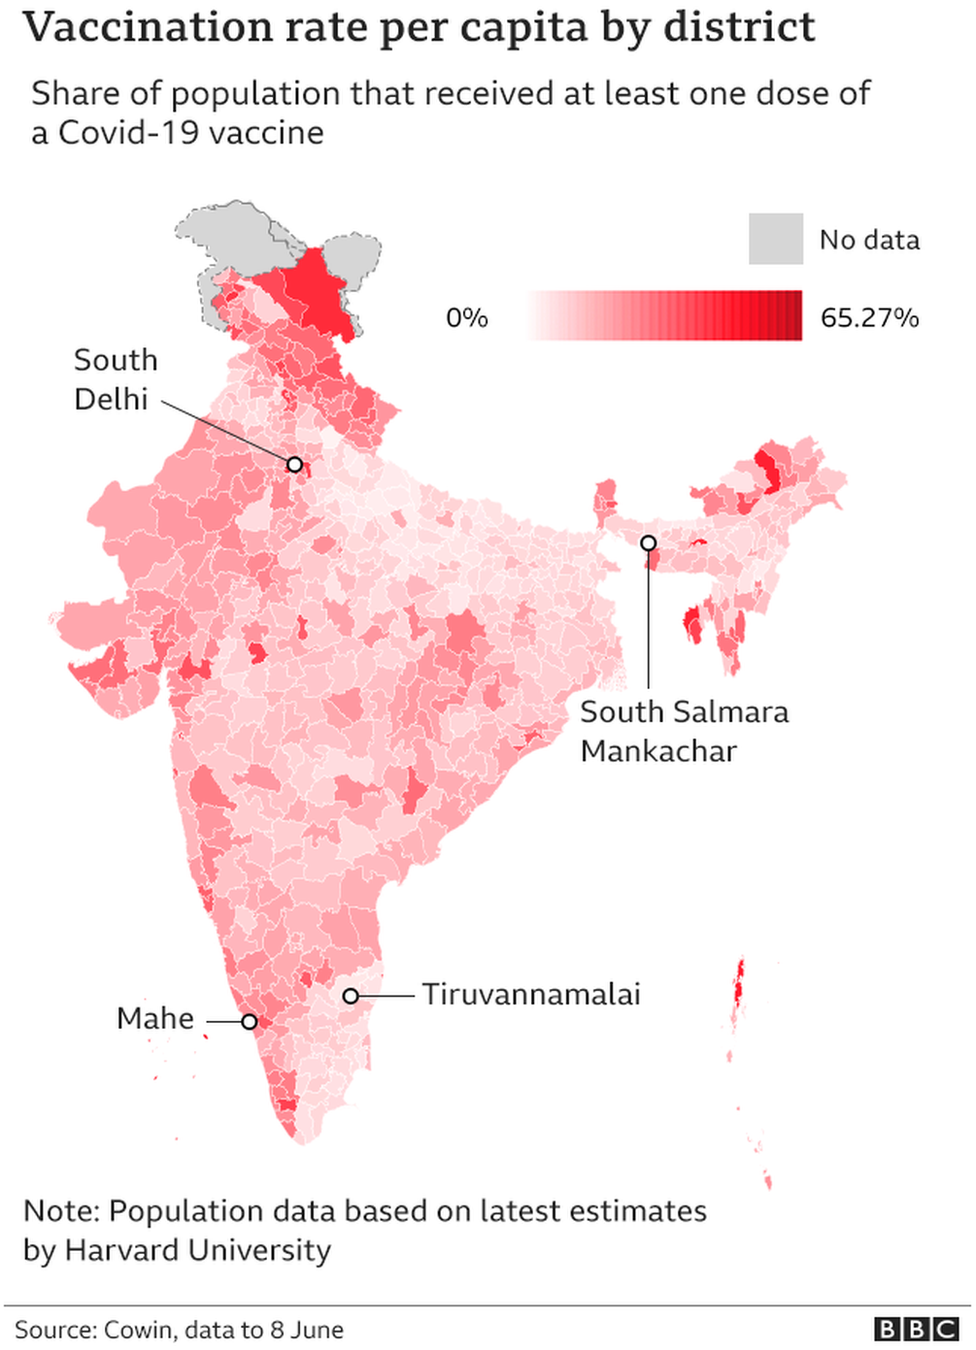 A map showing India's per capita vaccine rates by district